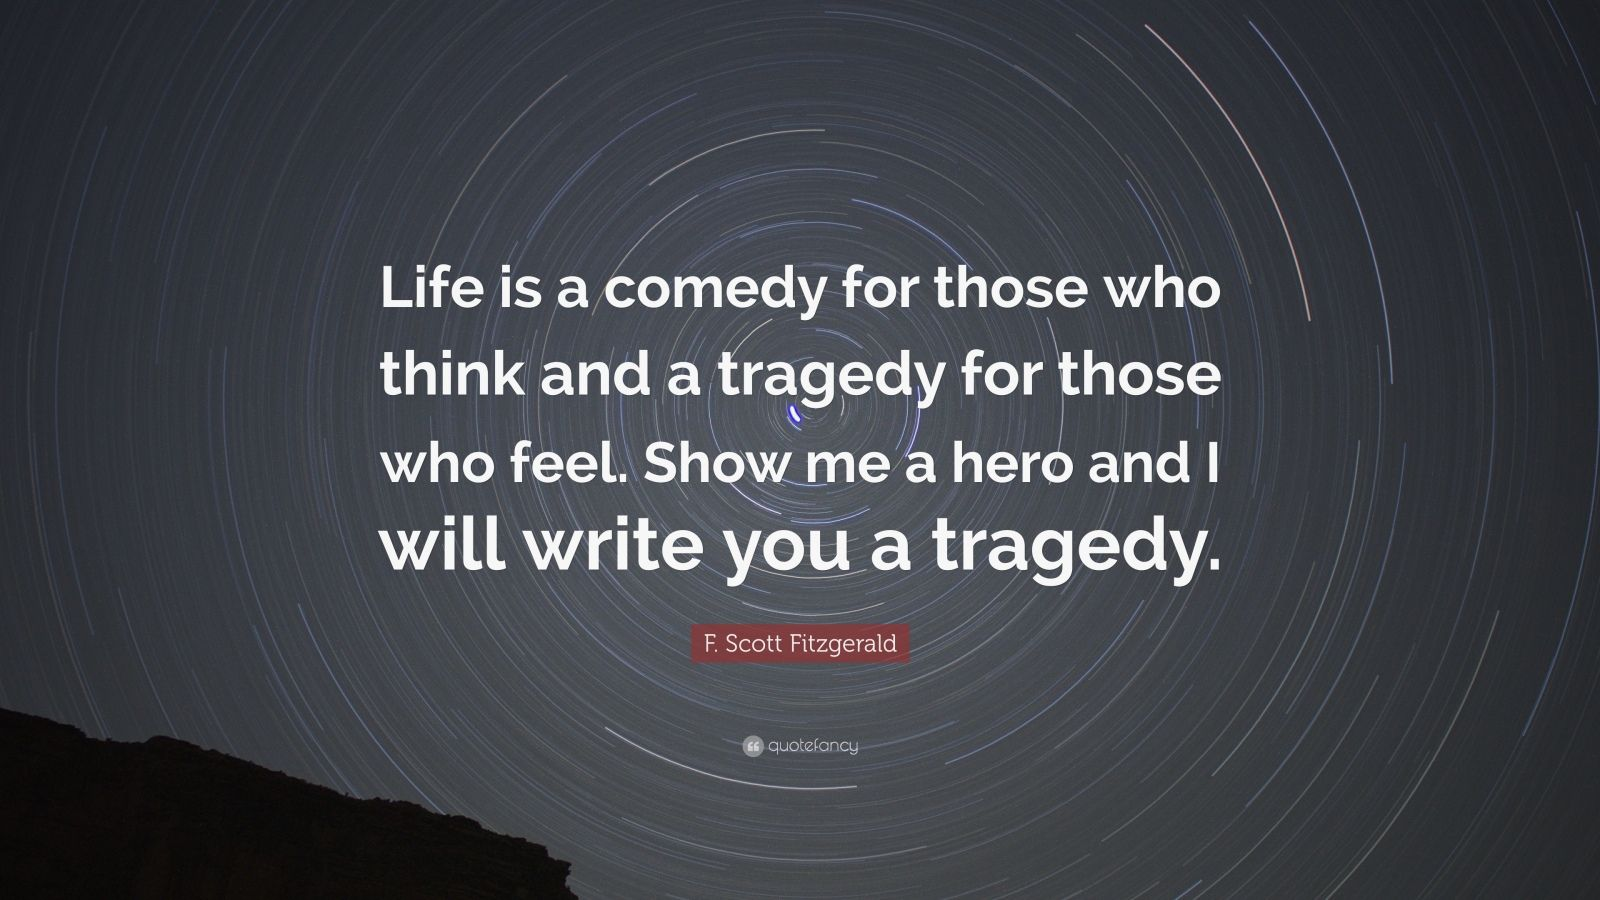 """F. Scott Fitzgerald Quote: """"Life is a comedy for those who think and a tragedy for those who feel. Show me a hero and I will write you a tragedy."""""""